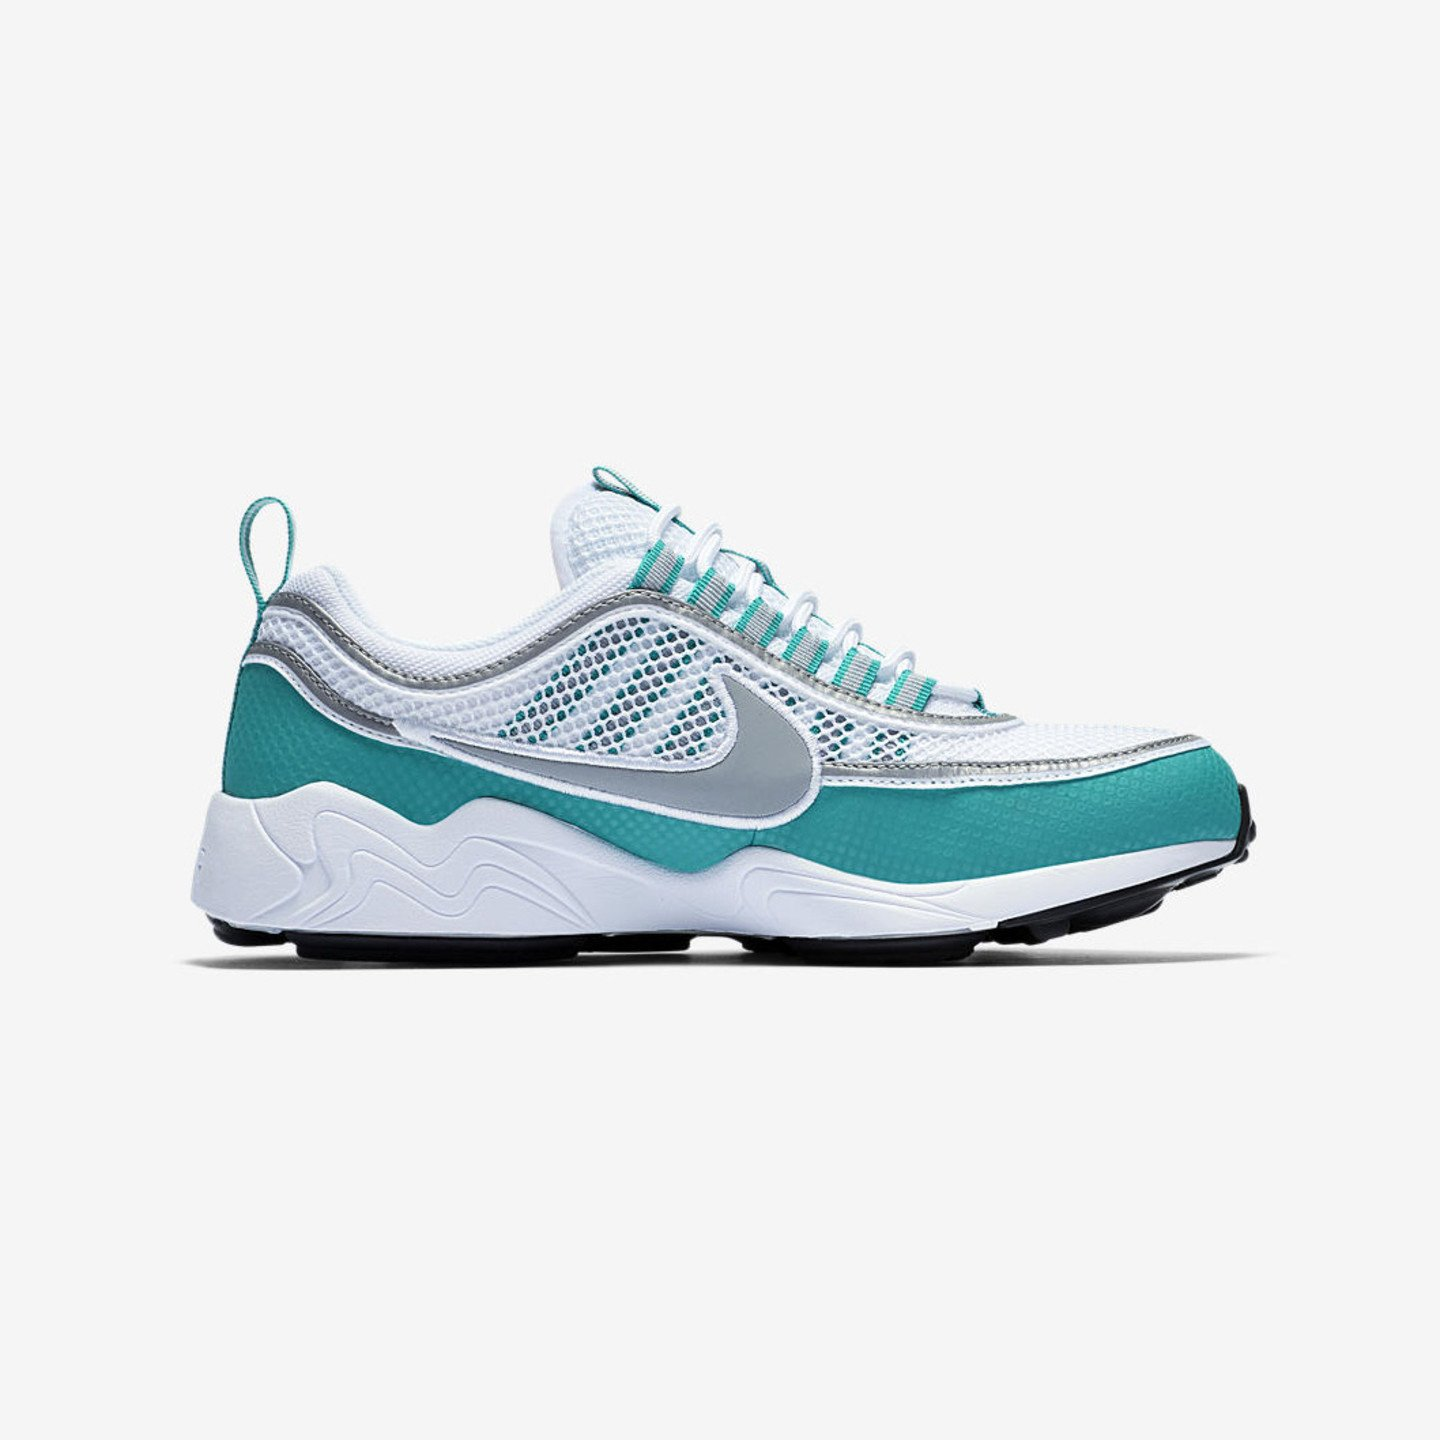 Nike Air Zoom Spiridon White / Silver / Turbo Green / Laser Orange 849776-102